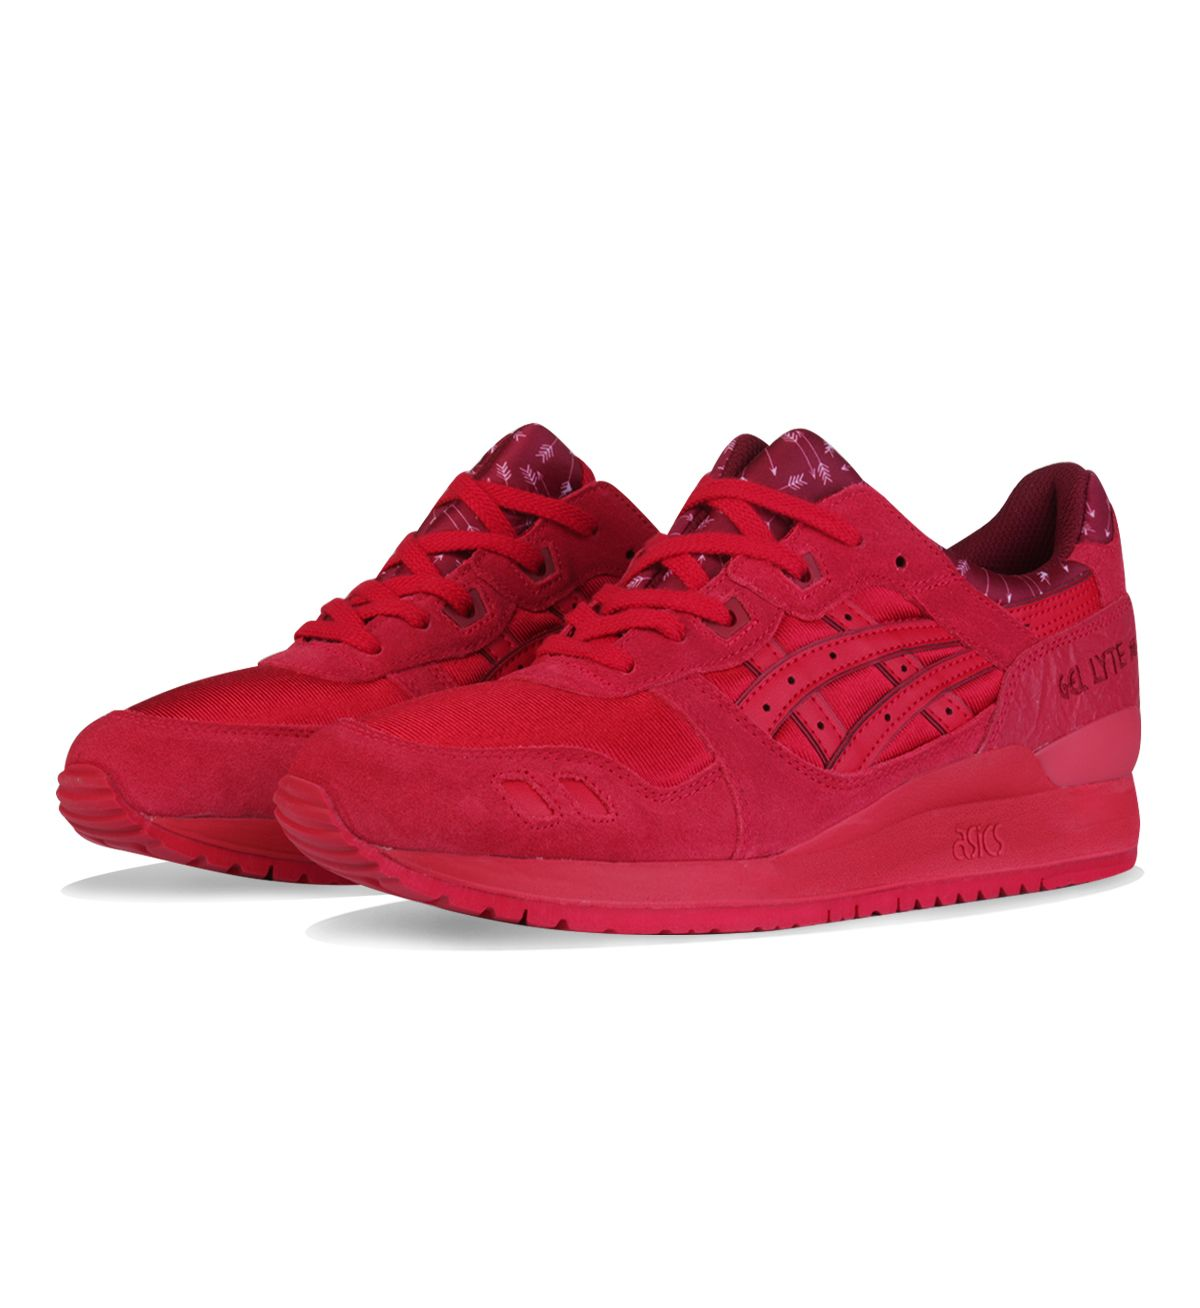 ASICS WMNS Gel Lyte III Valentines Pack Red / Red - ASICS